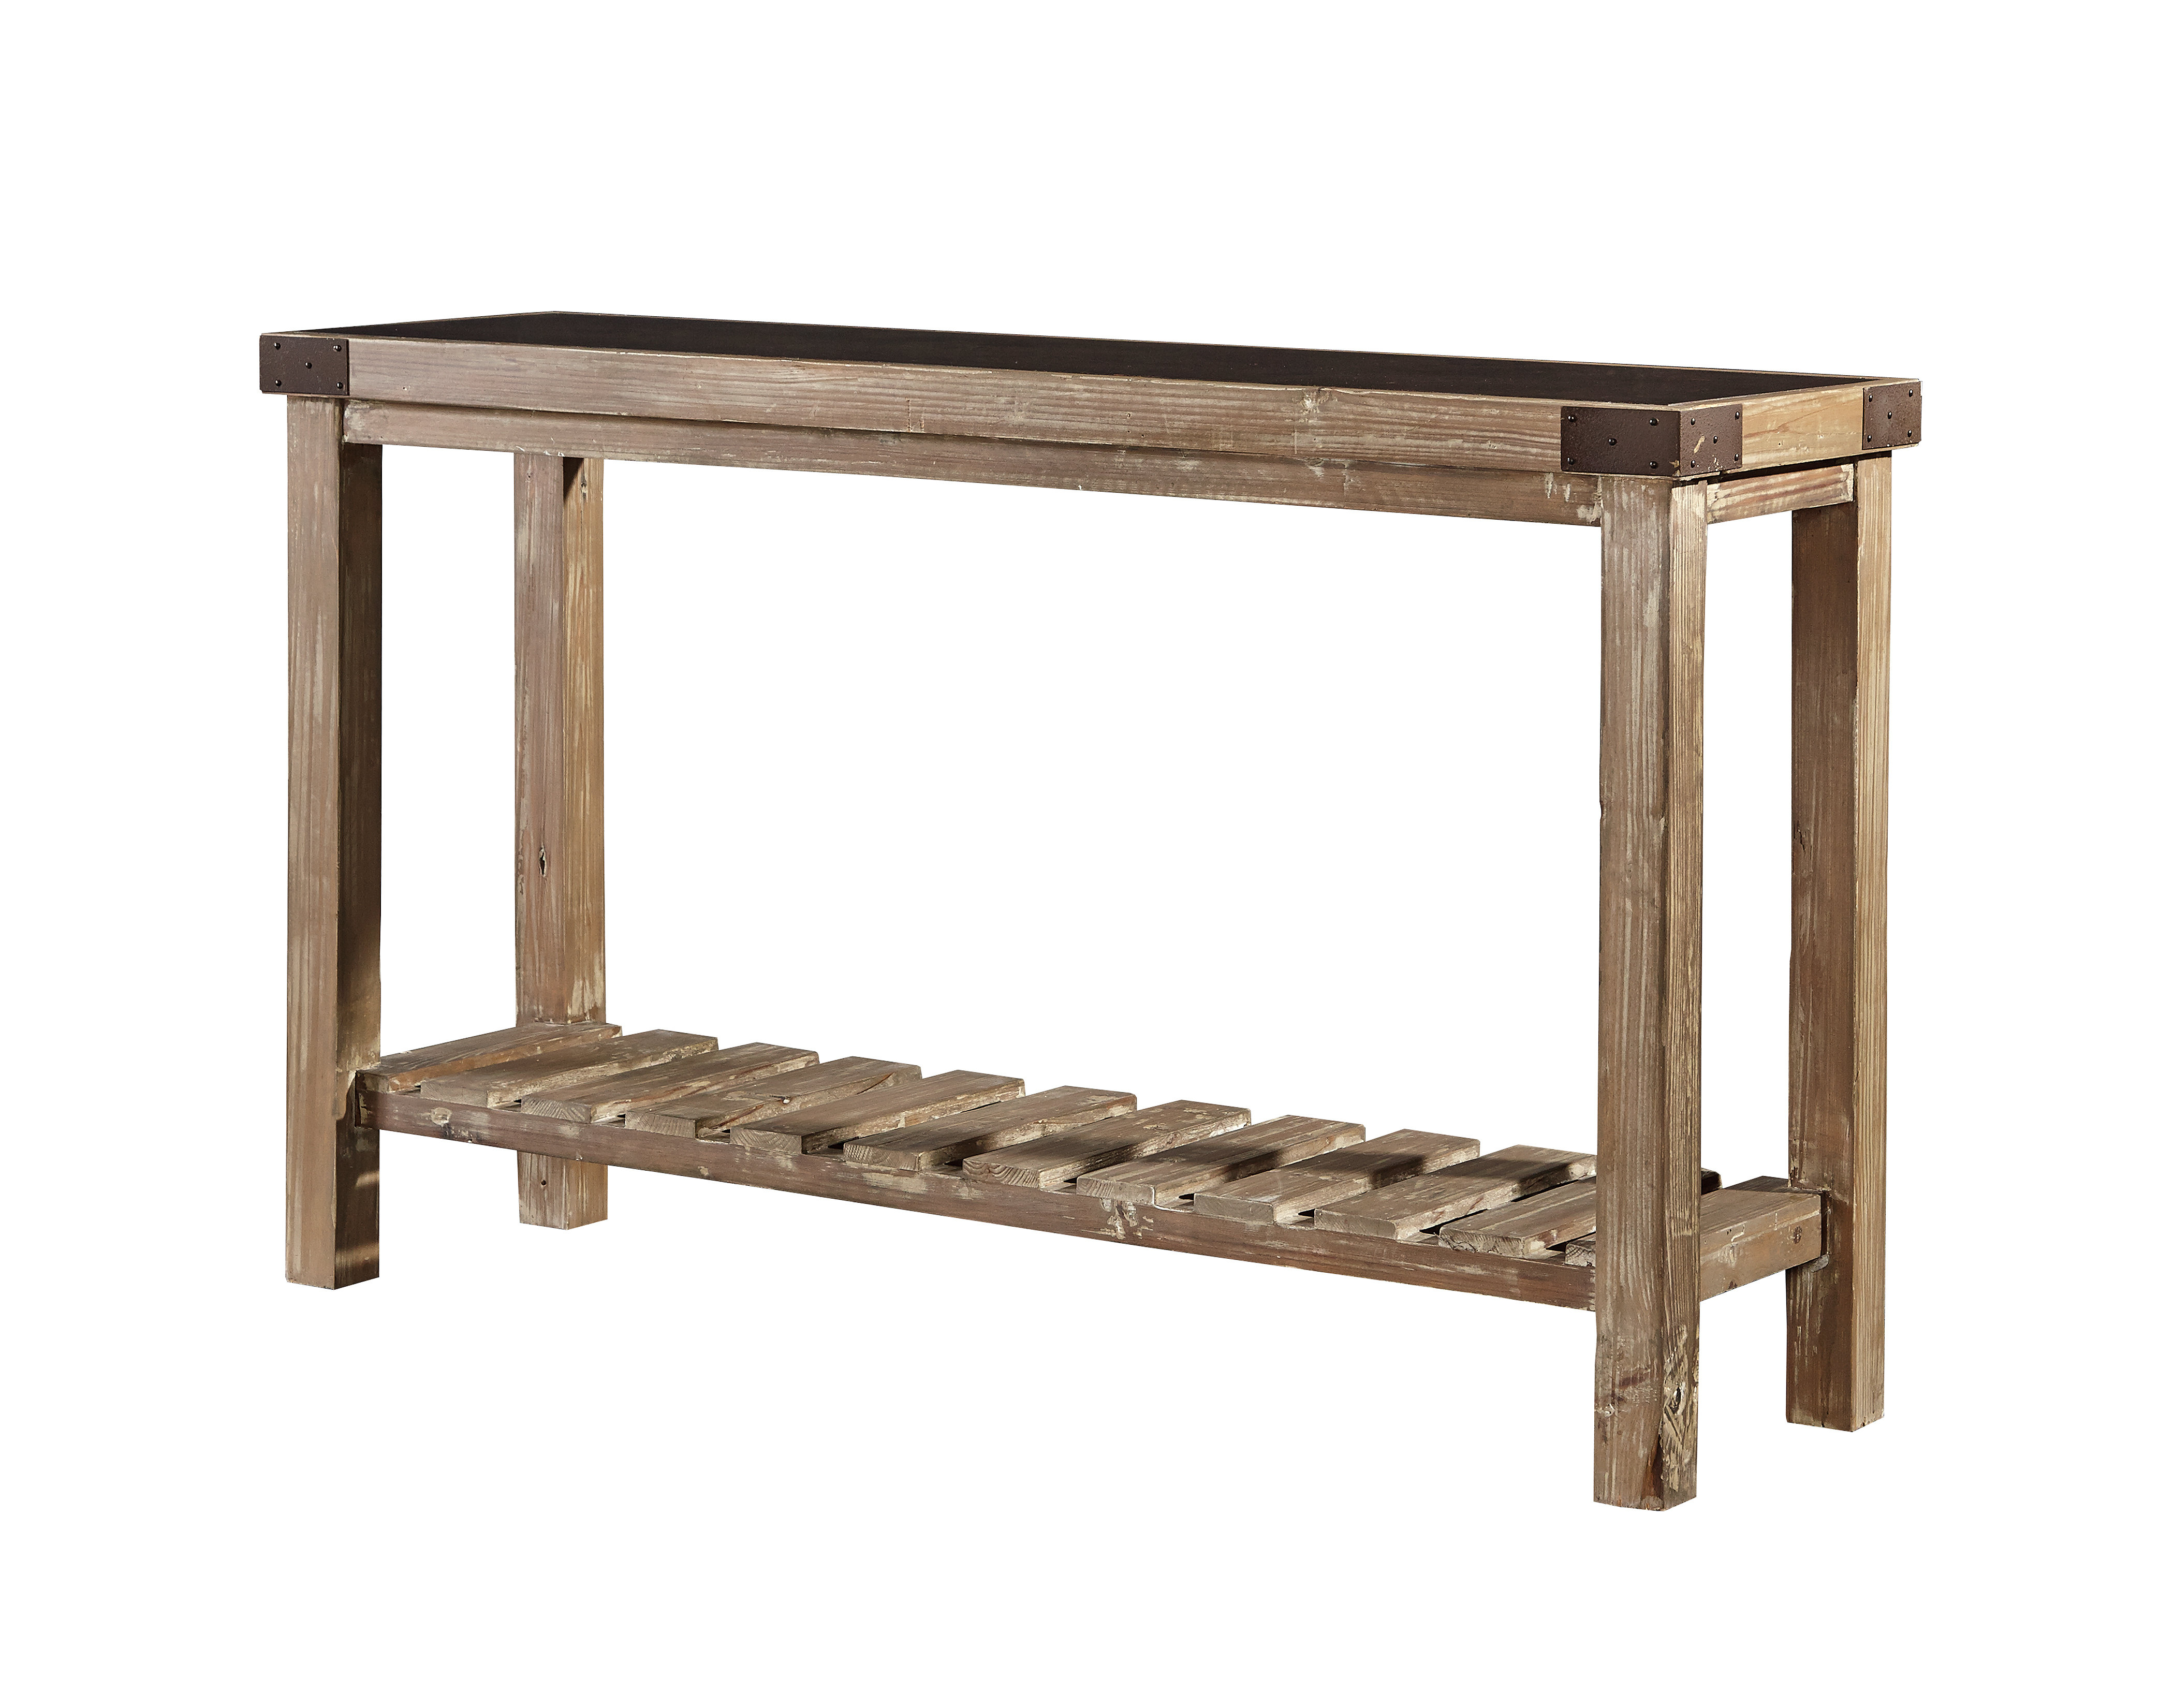 Gracie Oaks Warkworth Bluestone Top Console Table | Wayfair Intended For Bluestone Console Tables (View 11 of 20)